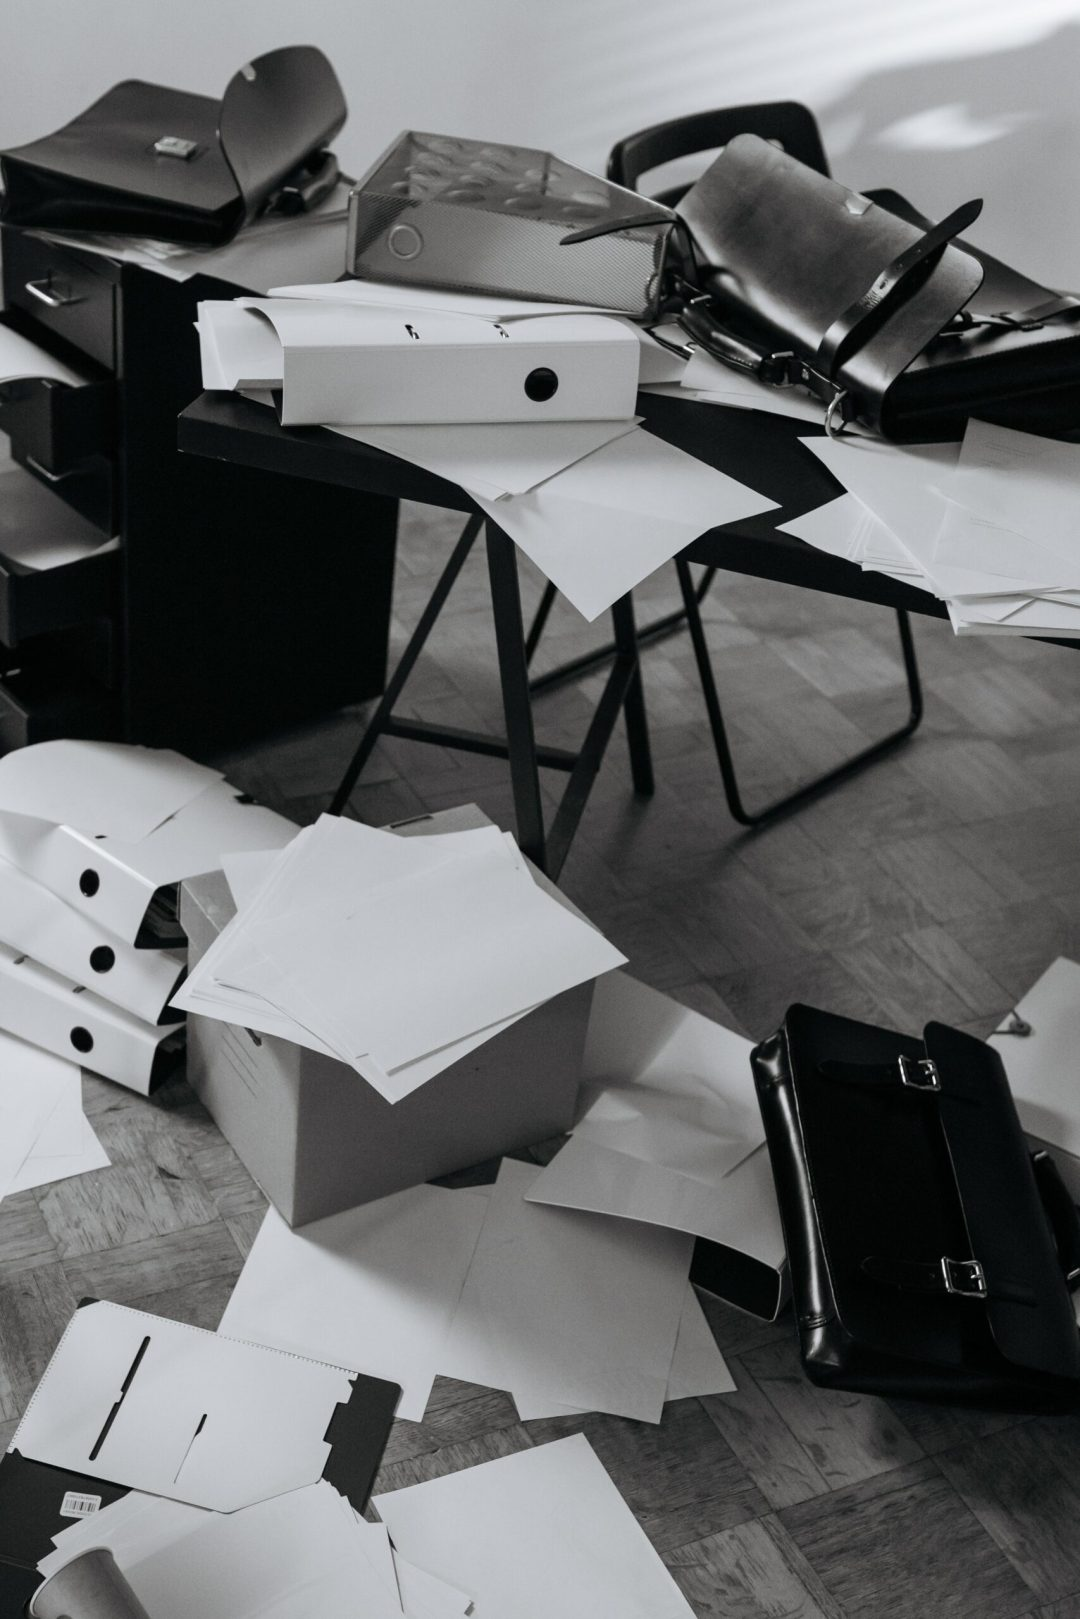 Scattered paper everywhere